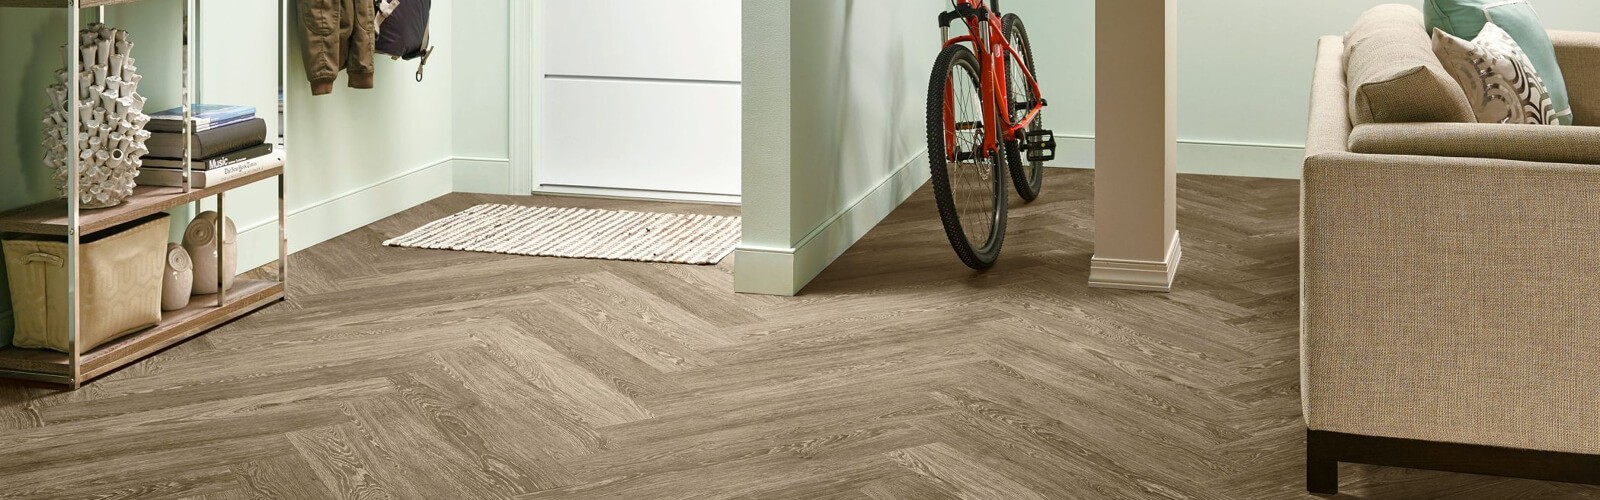 Charlestown Oak Luxury Vinyl Tile | Baycarpet